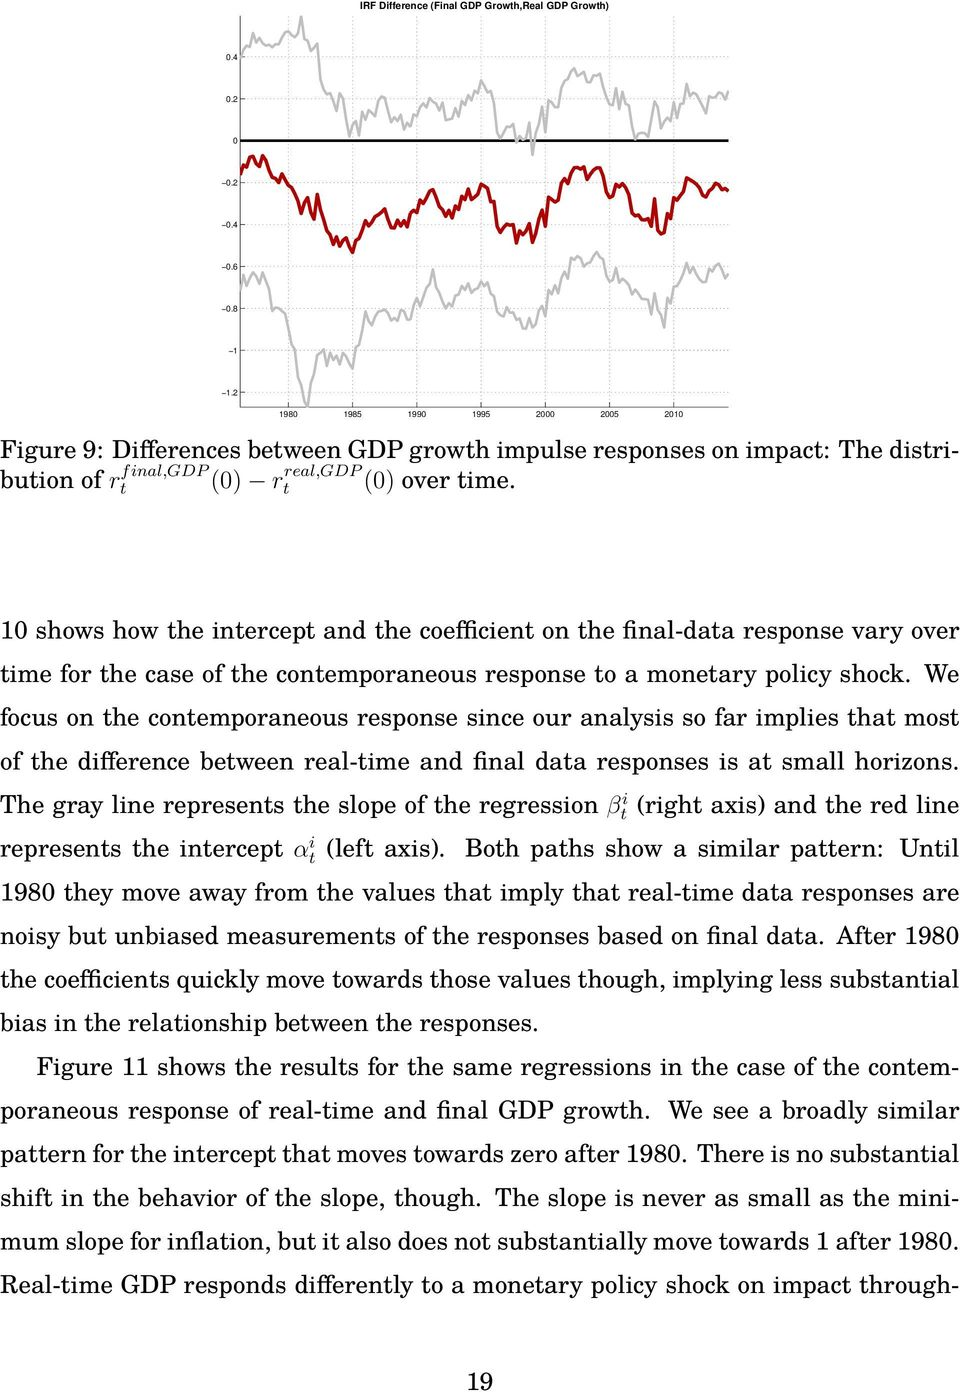 1 shows how the intercept and the coefficient on the final-data response vary over time for the case of the contemporaneous response to a monetary policy shock.